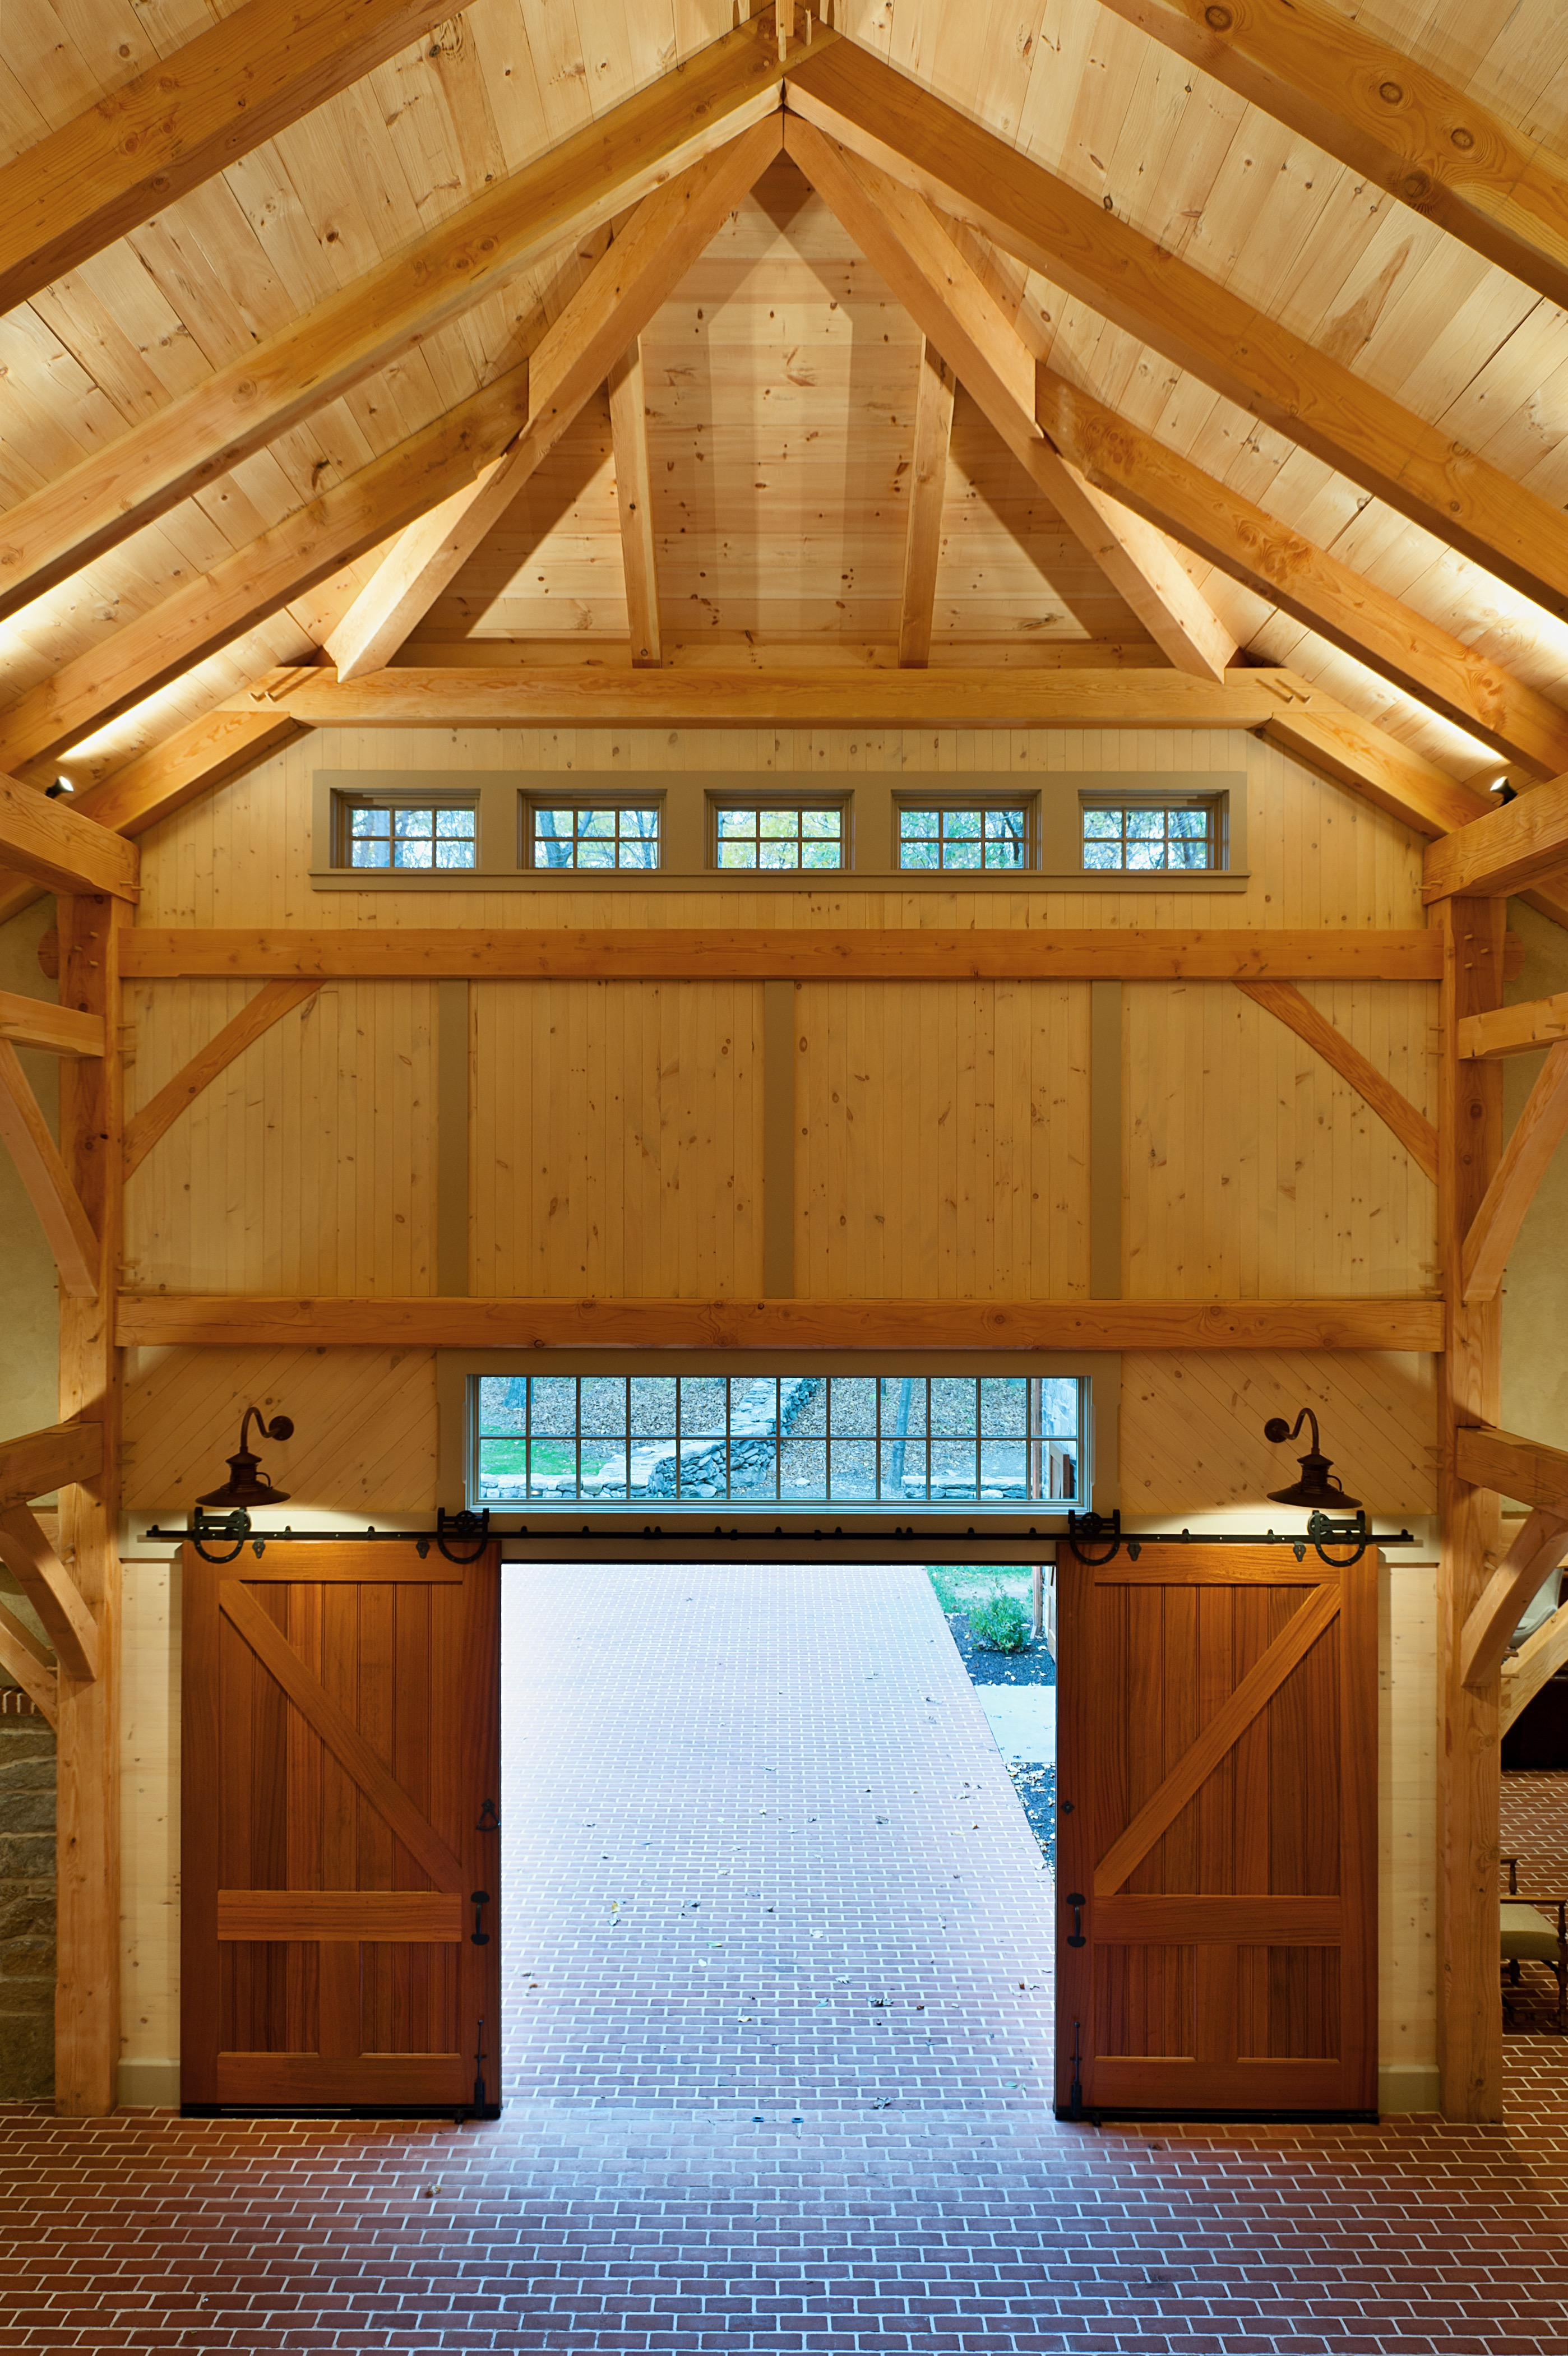 Garage Interior Features Rustic Sliding Barn Doors (Image 16 of 38)